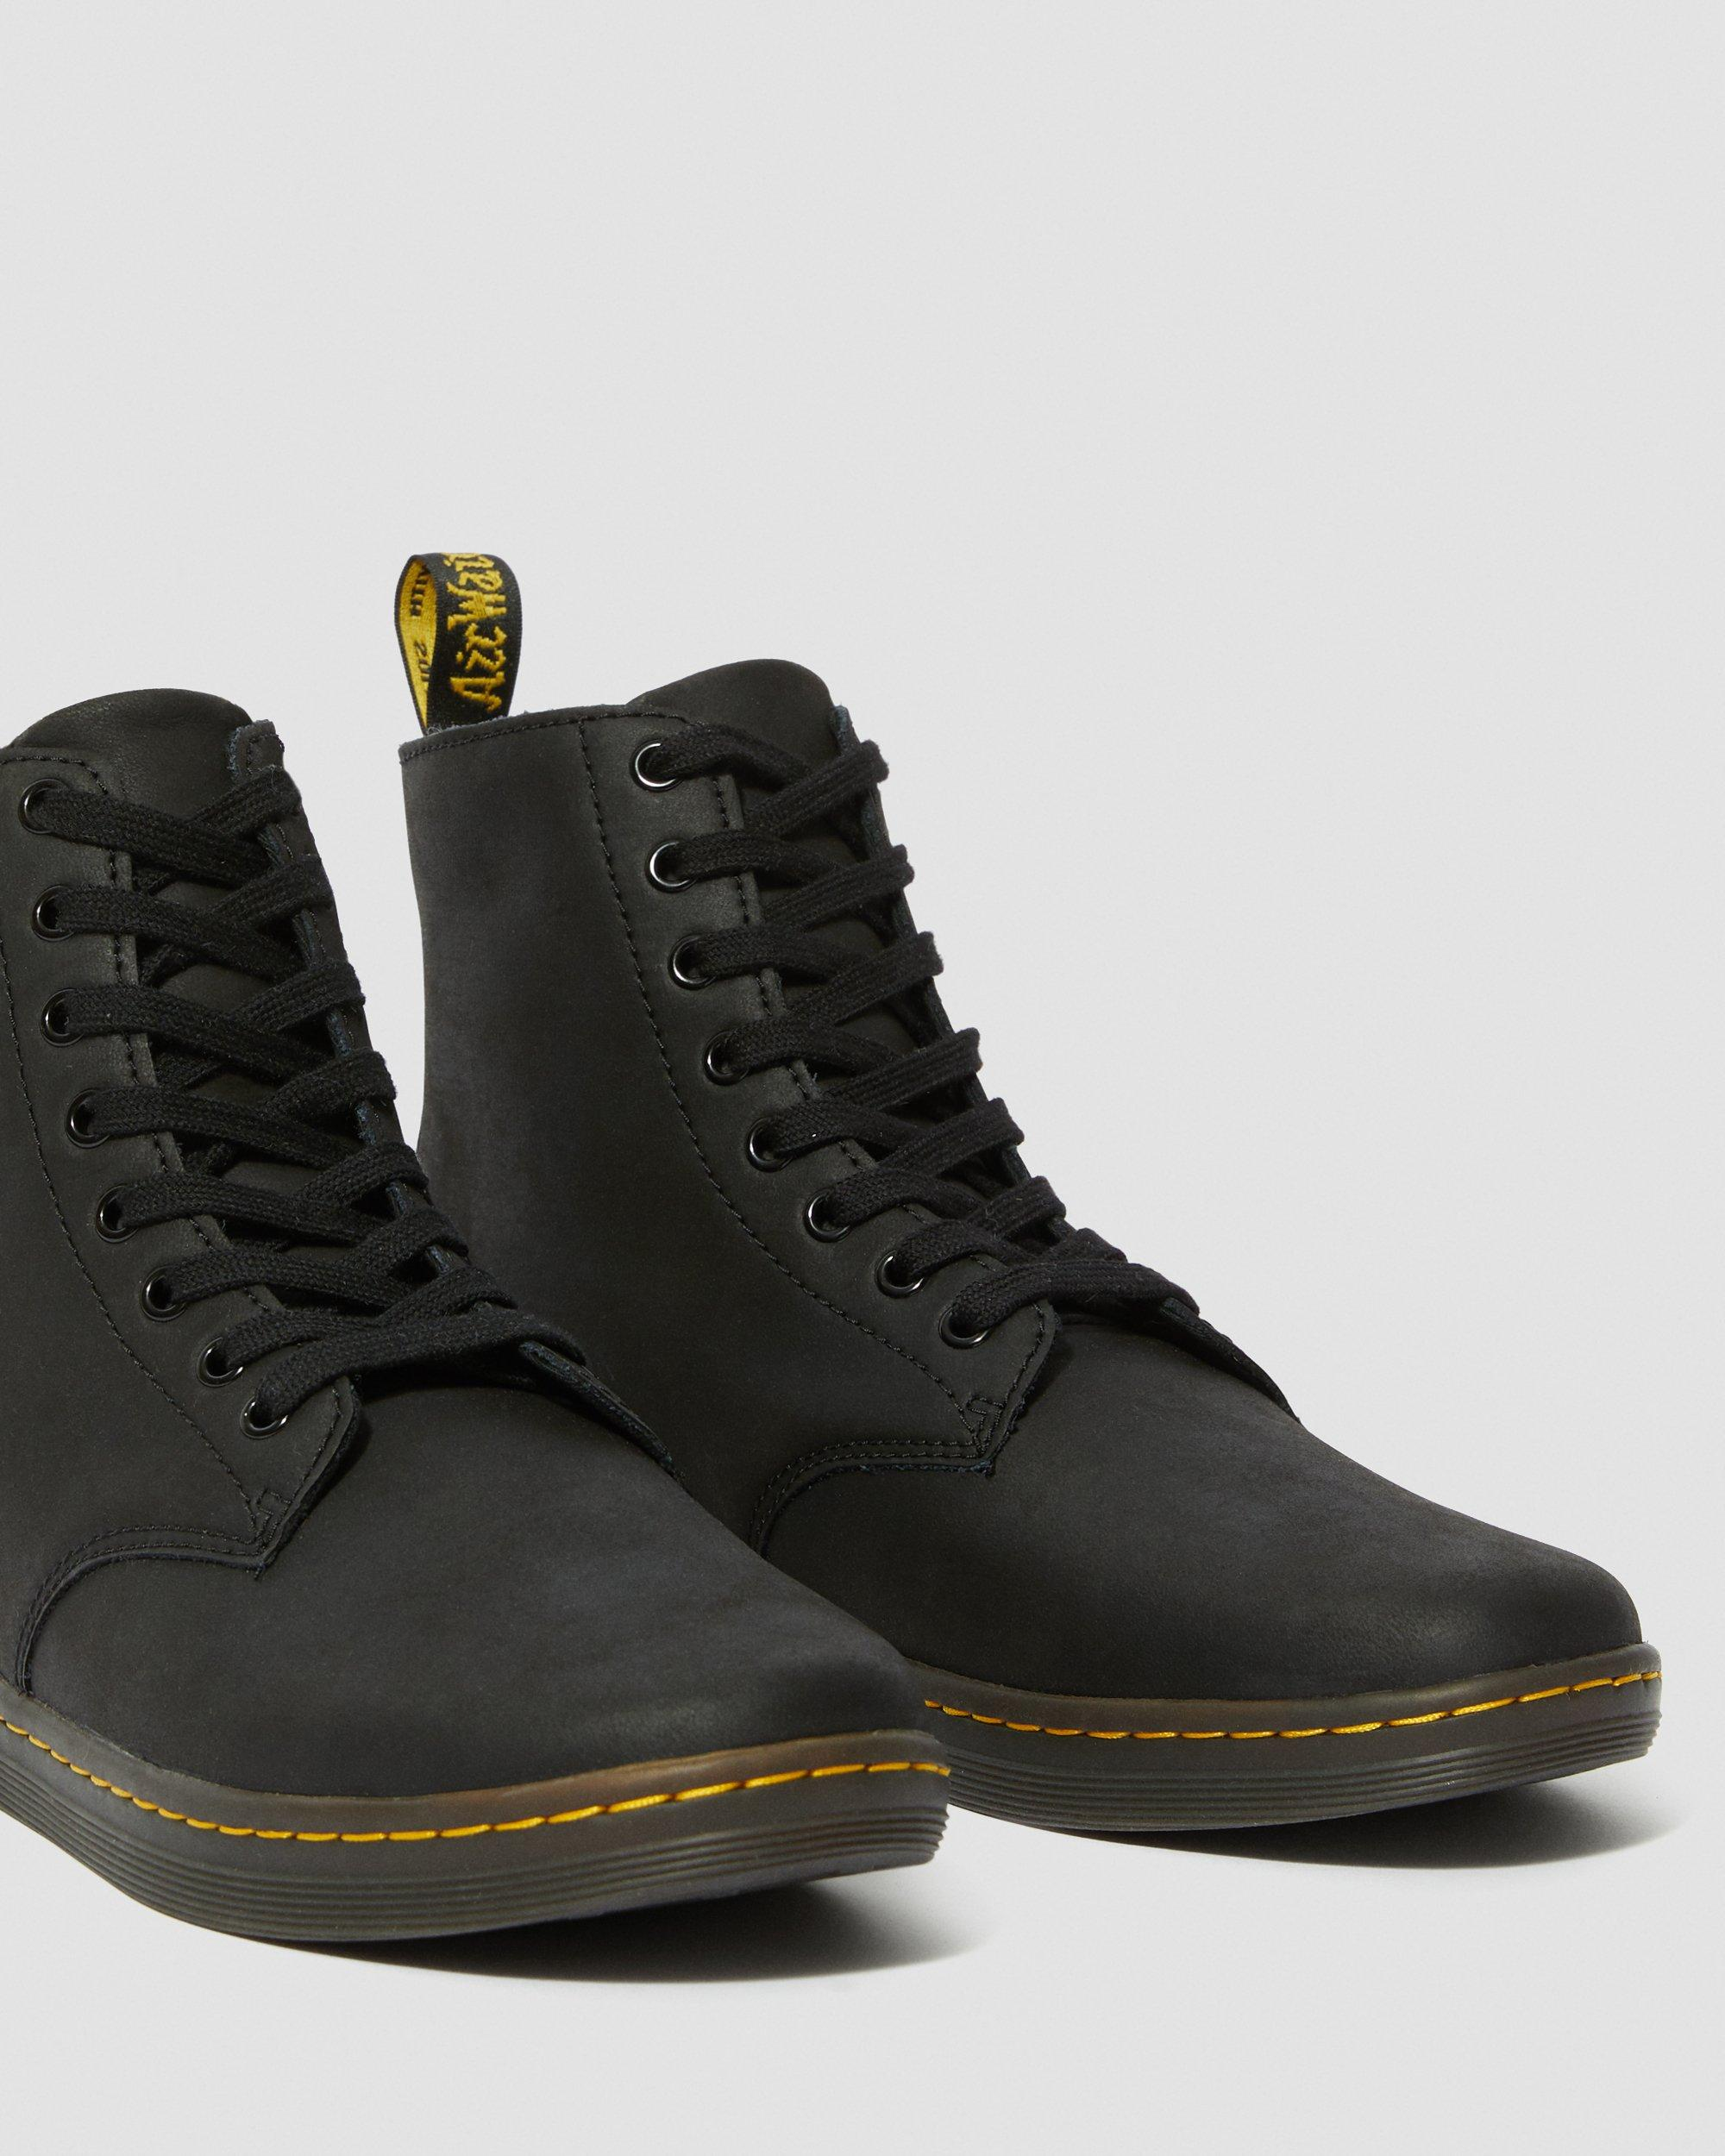 TOBIAS MEN'S LEATHER CASUAL BOOTS   Dr